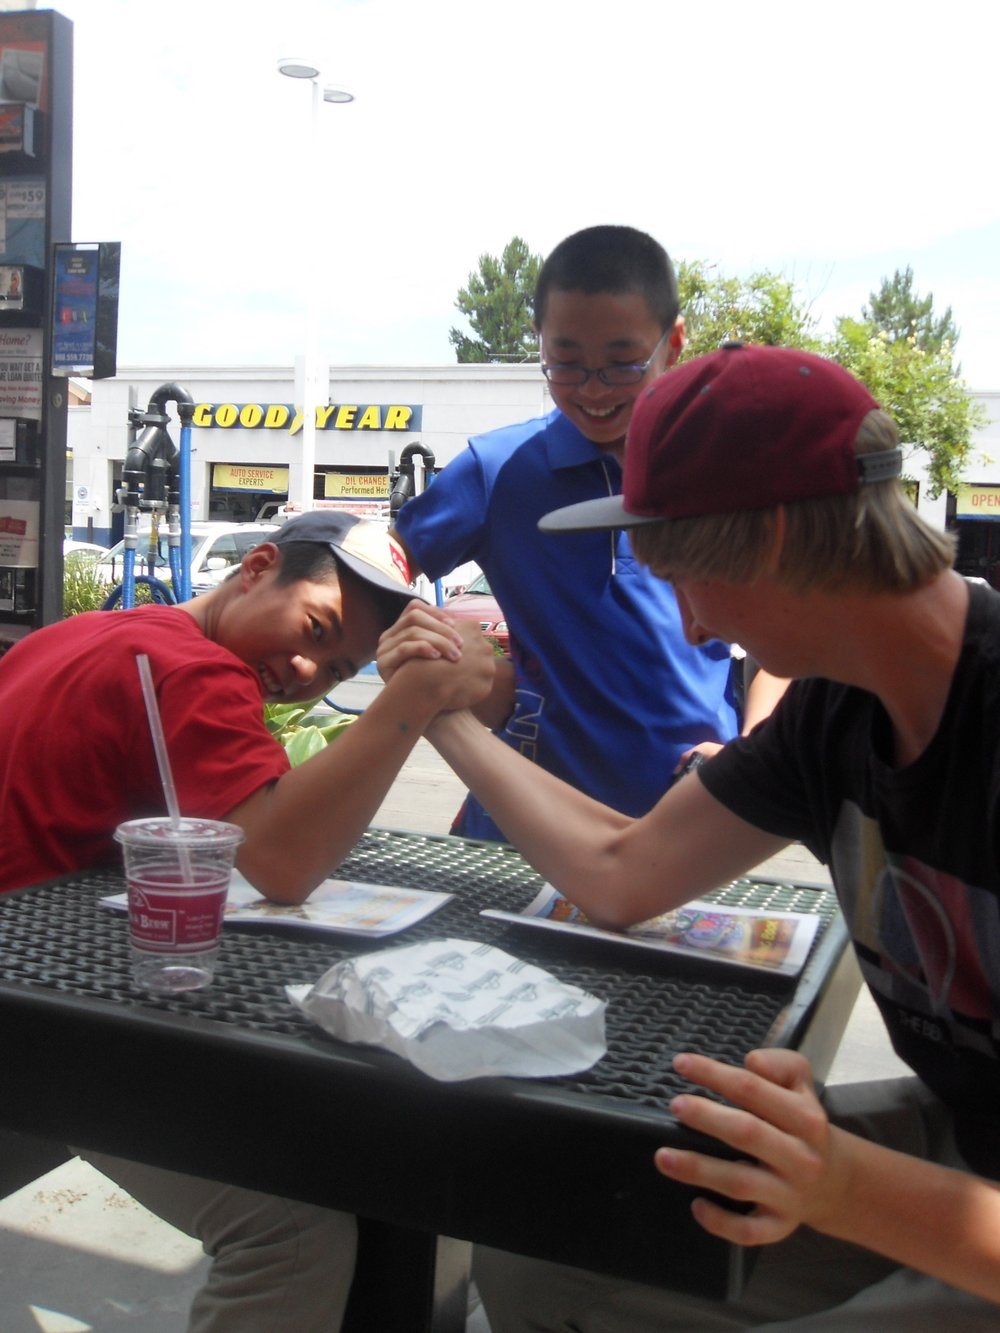 Exchange Arm wrestle.jpg